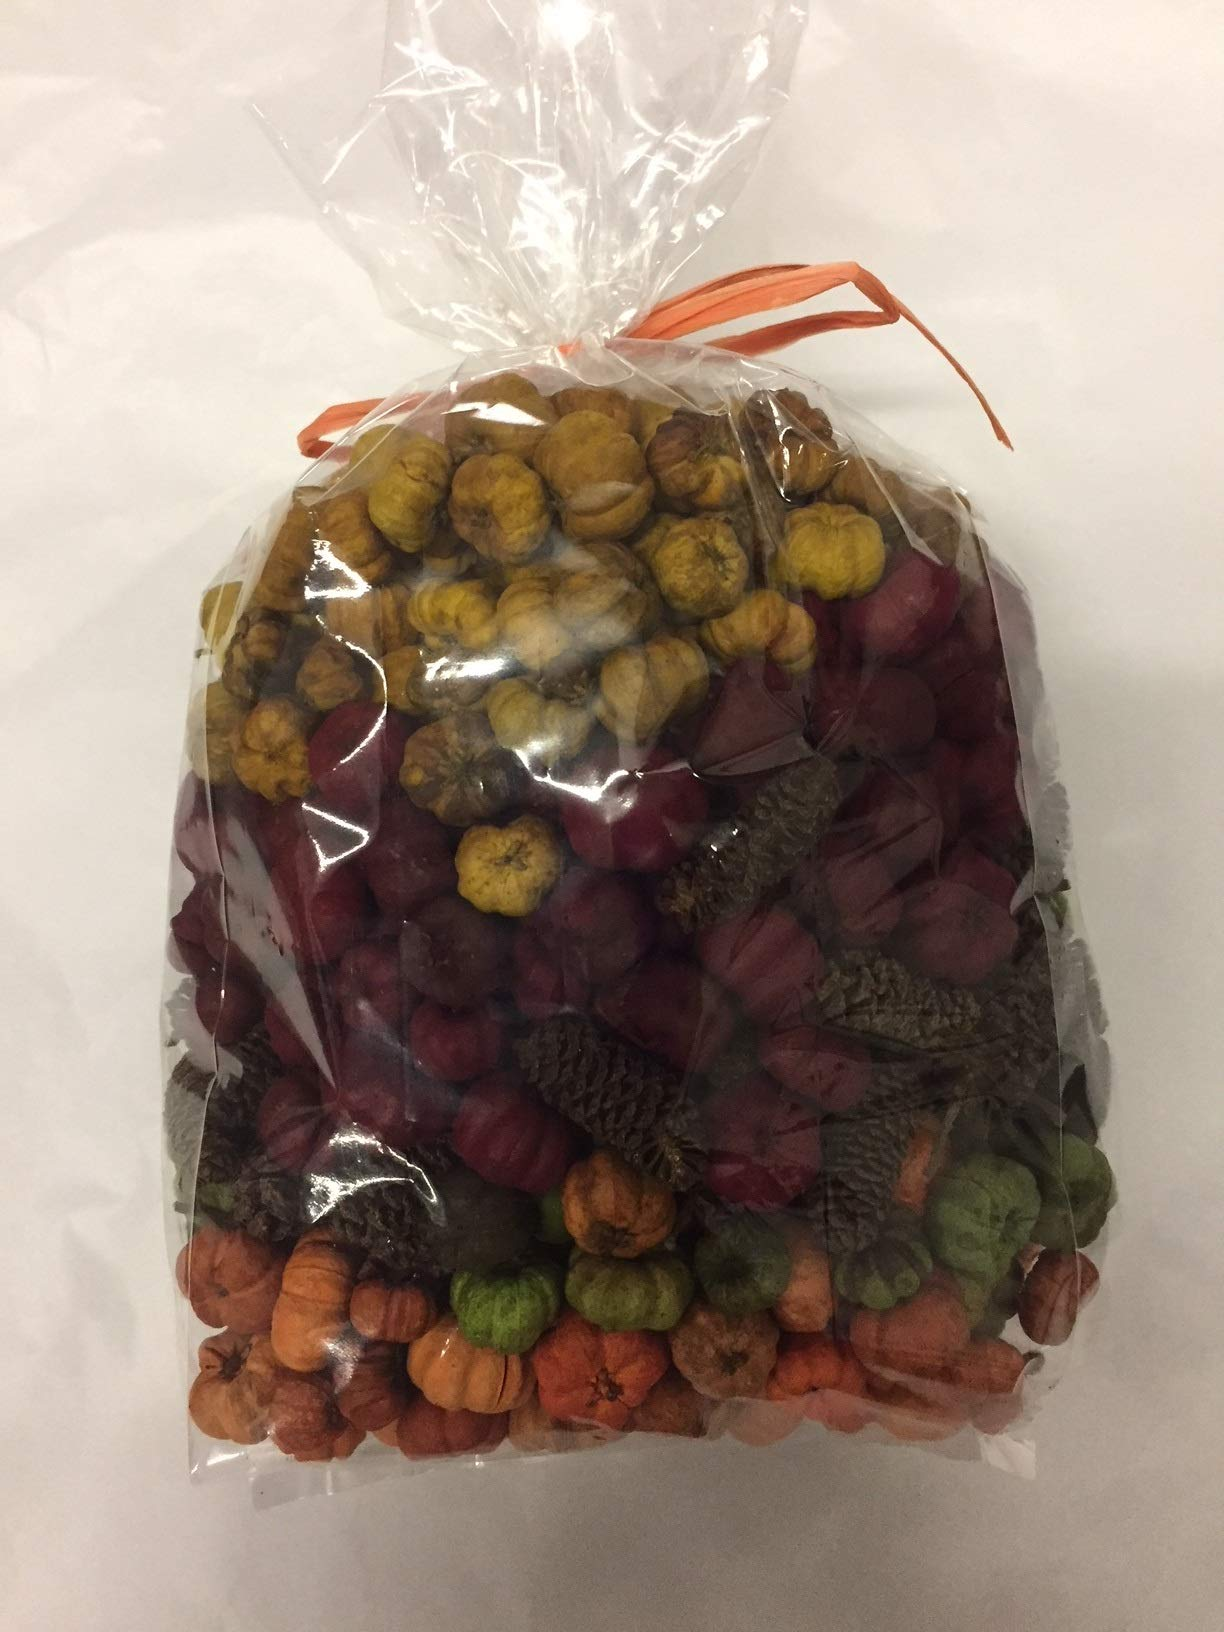 Wreaths For Door Fall Putka Pod Vase Filler Potpourri Mini Pumpkins Fall Decorative Bowl Filler Natural Dried Putka Pods Orange Green Yellow Red and Birch Pine Cones 7.5 Cups by Wreaths For Door